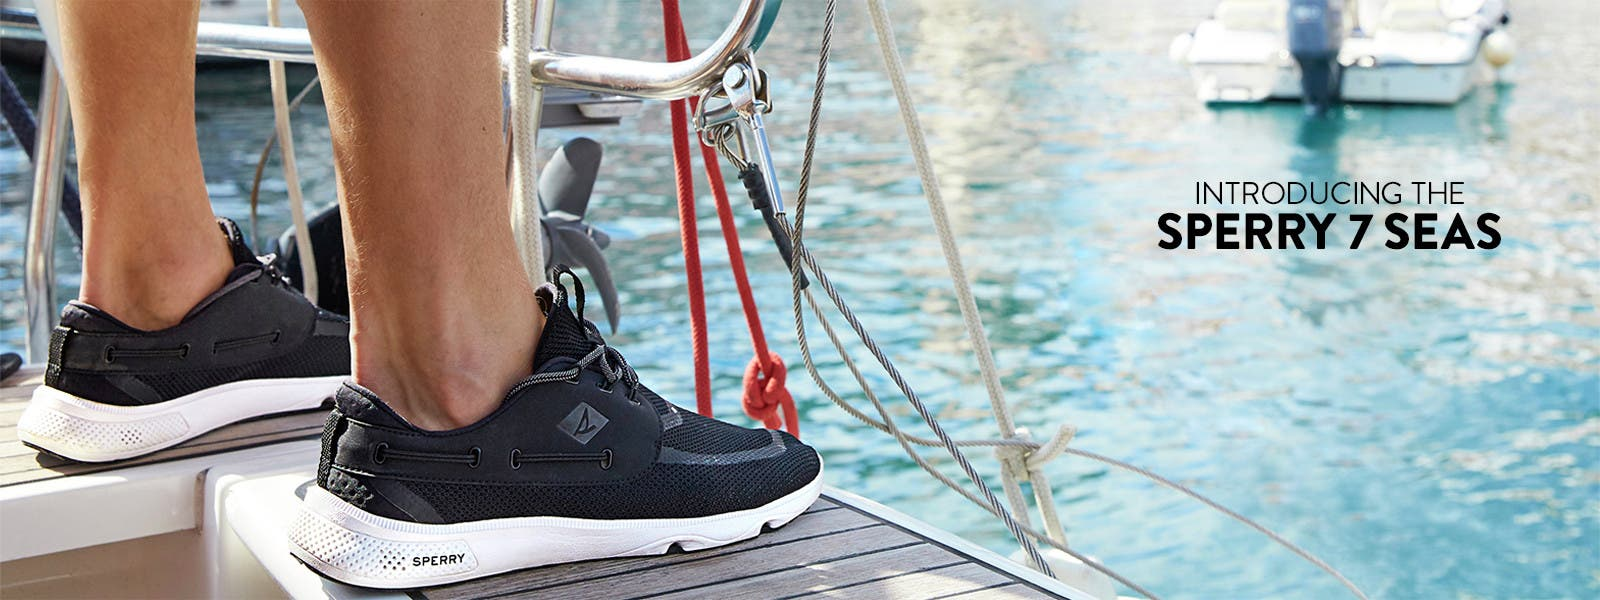 Introducing the Sperry 7 SEAS.